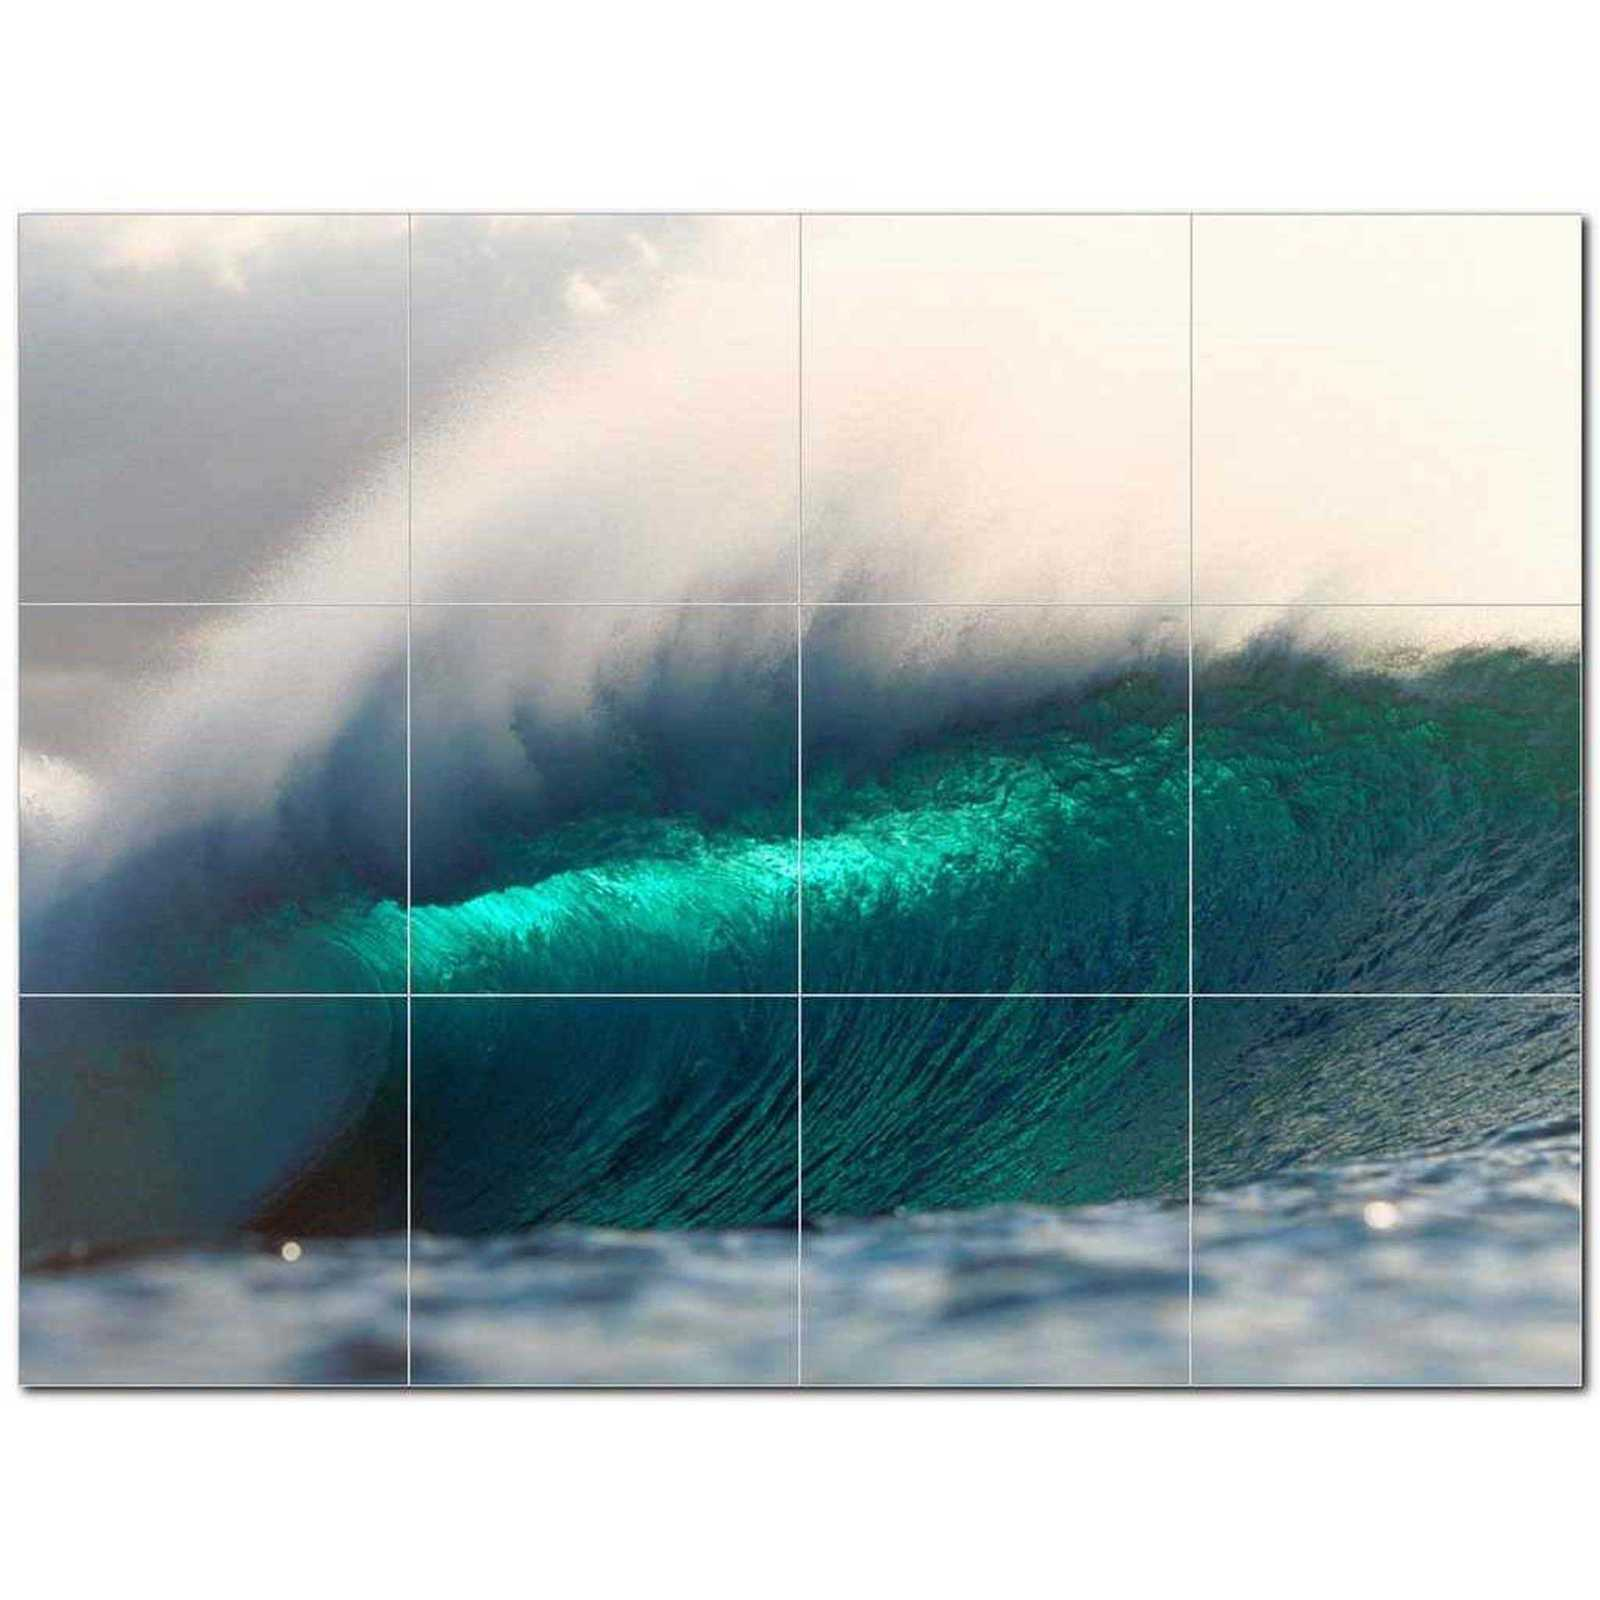 Primary image for Wave Photo Ceramic Tile Mural Kitchen Backsplash Bathroom Shower BAZ406295